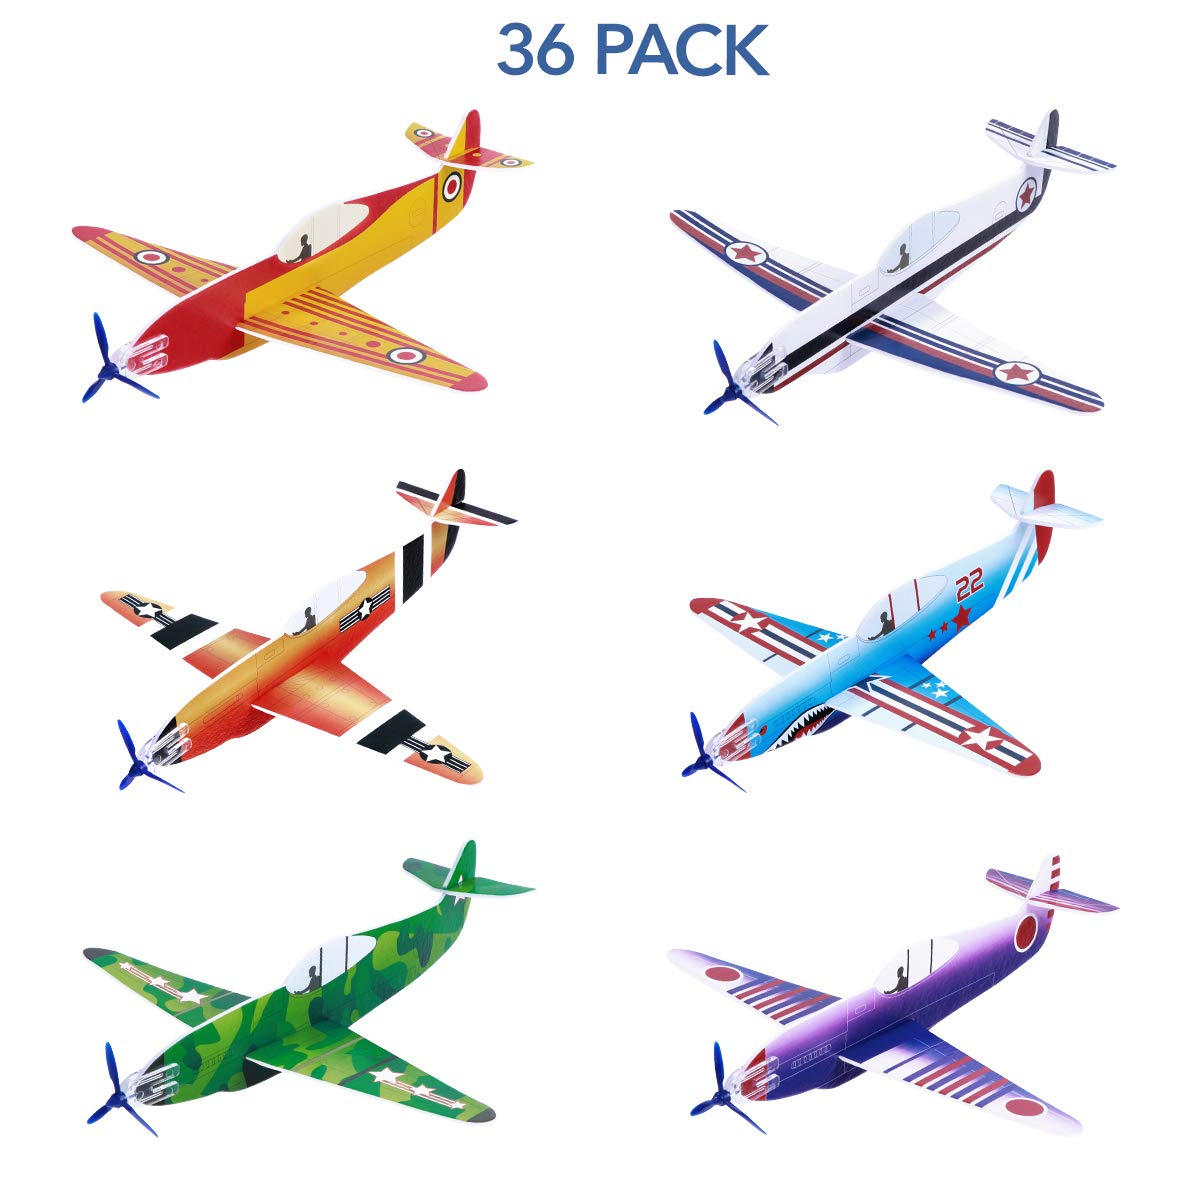 Toyvian Glider Planes Flying Airplane Gliders Toys Foam Plane Models 36 Pack 8 Inch Party Bag Fillers, Carnival Prizes, Outdoor Games for Kids Boys Girls